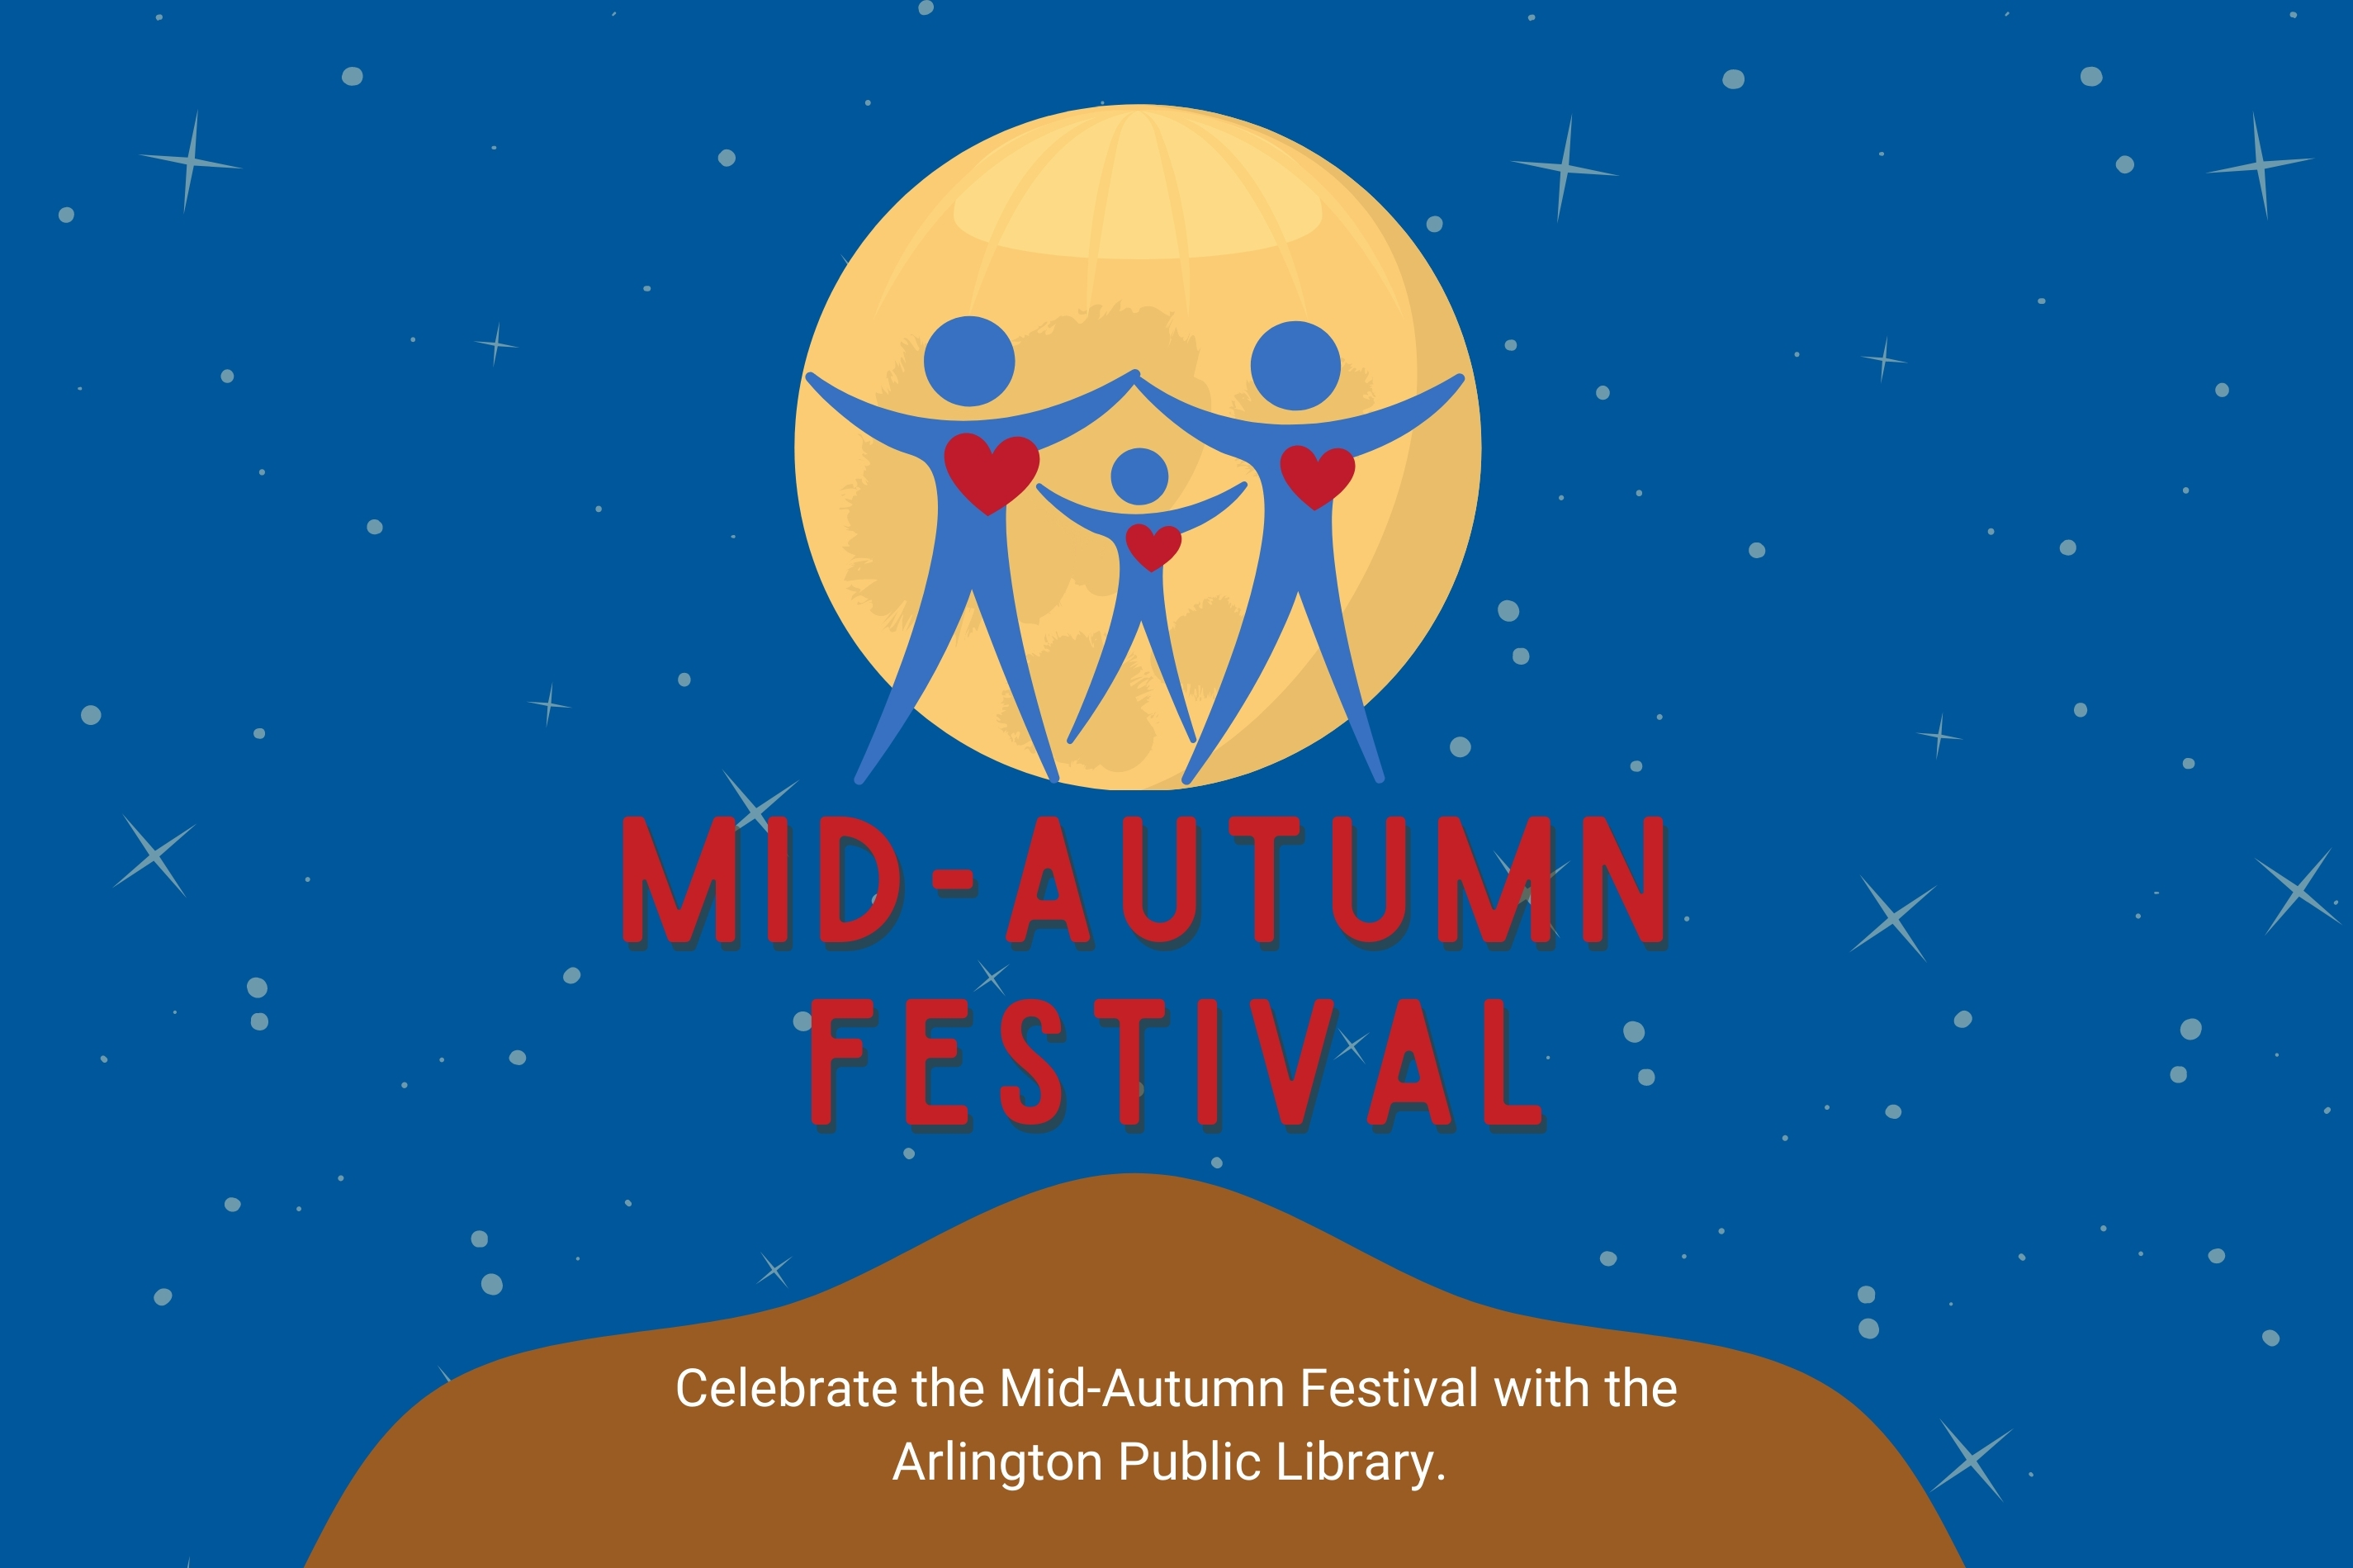 Celebrate the Mid-Autumn Festival with the Arlington Public Library